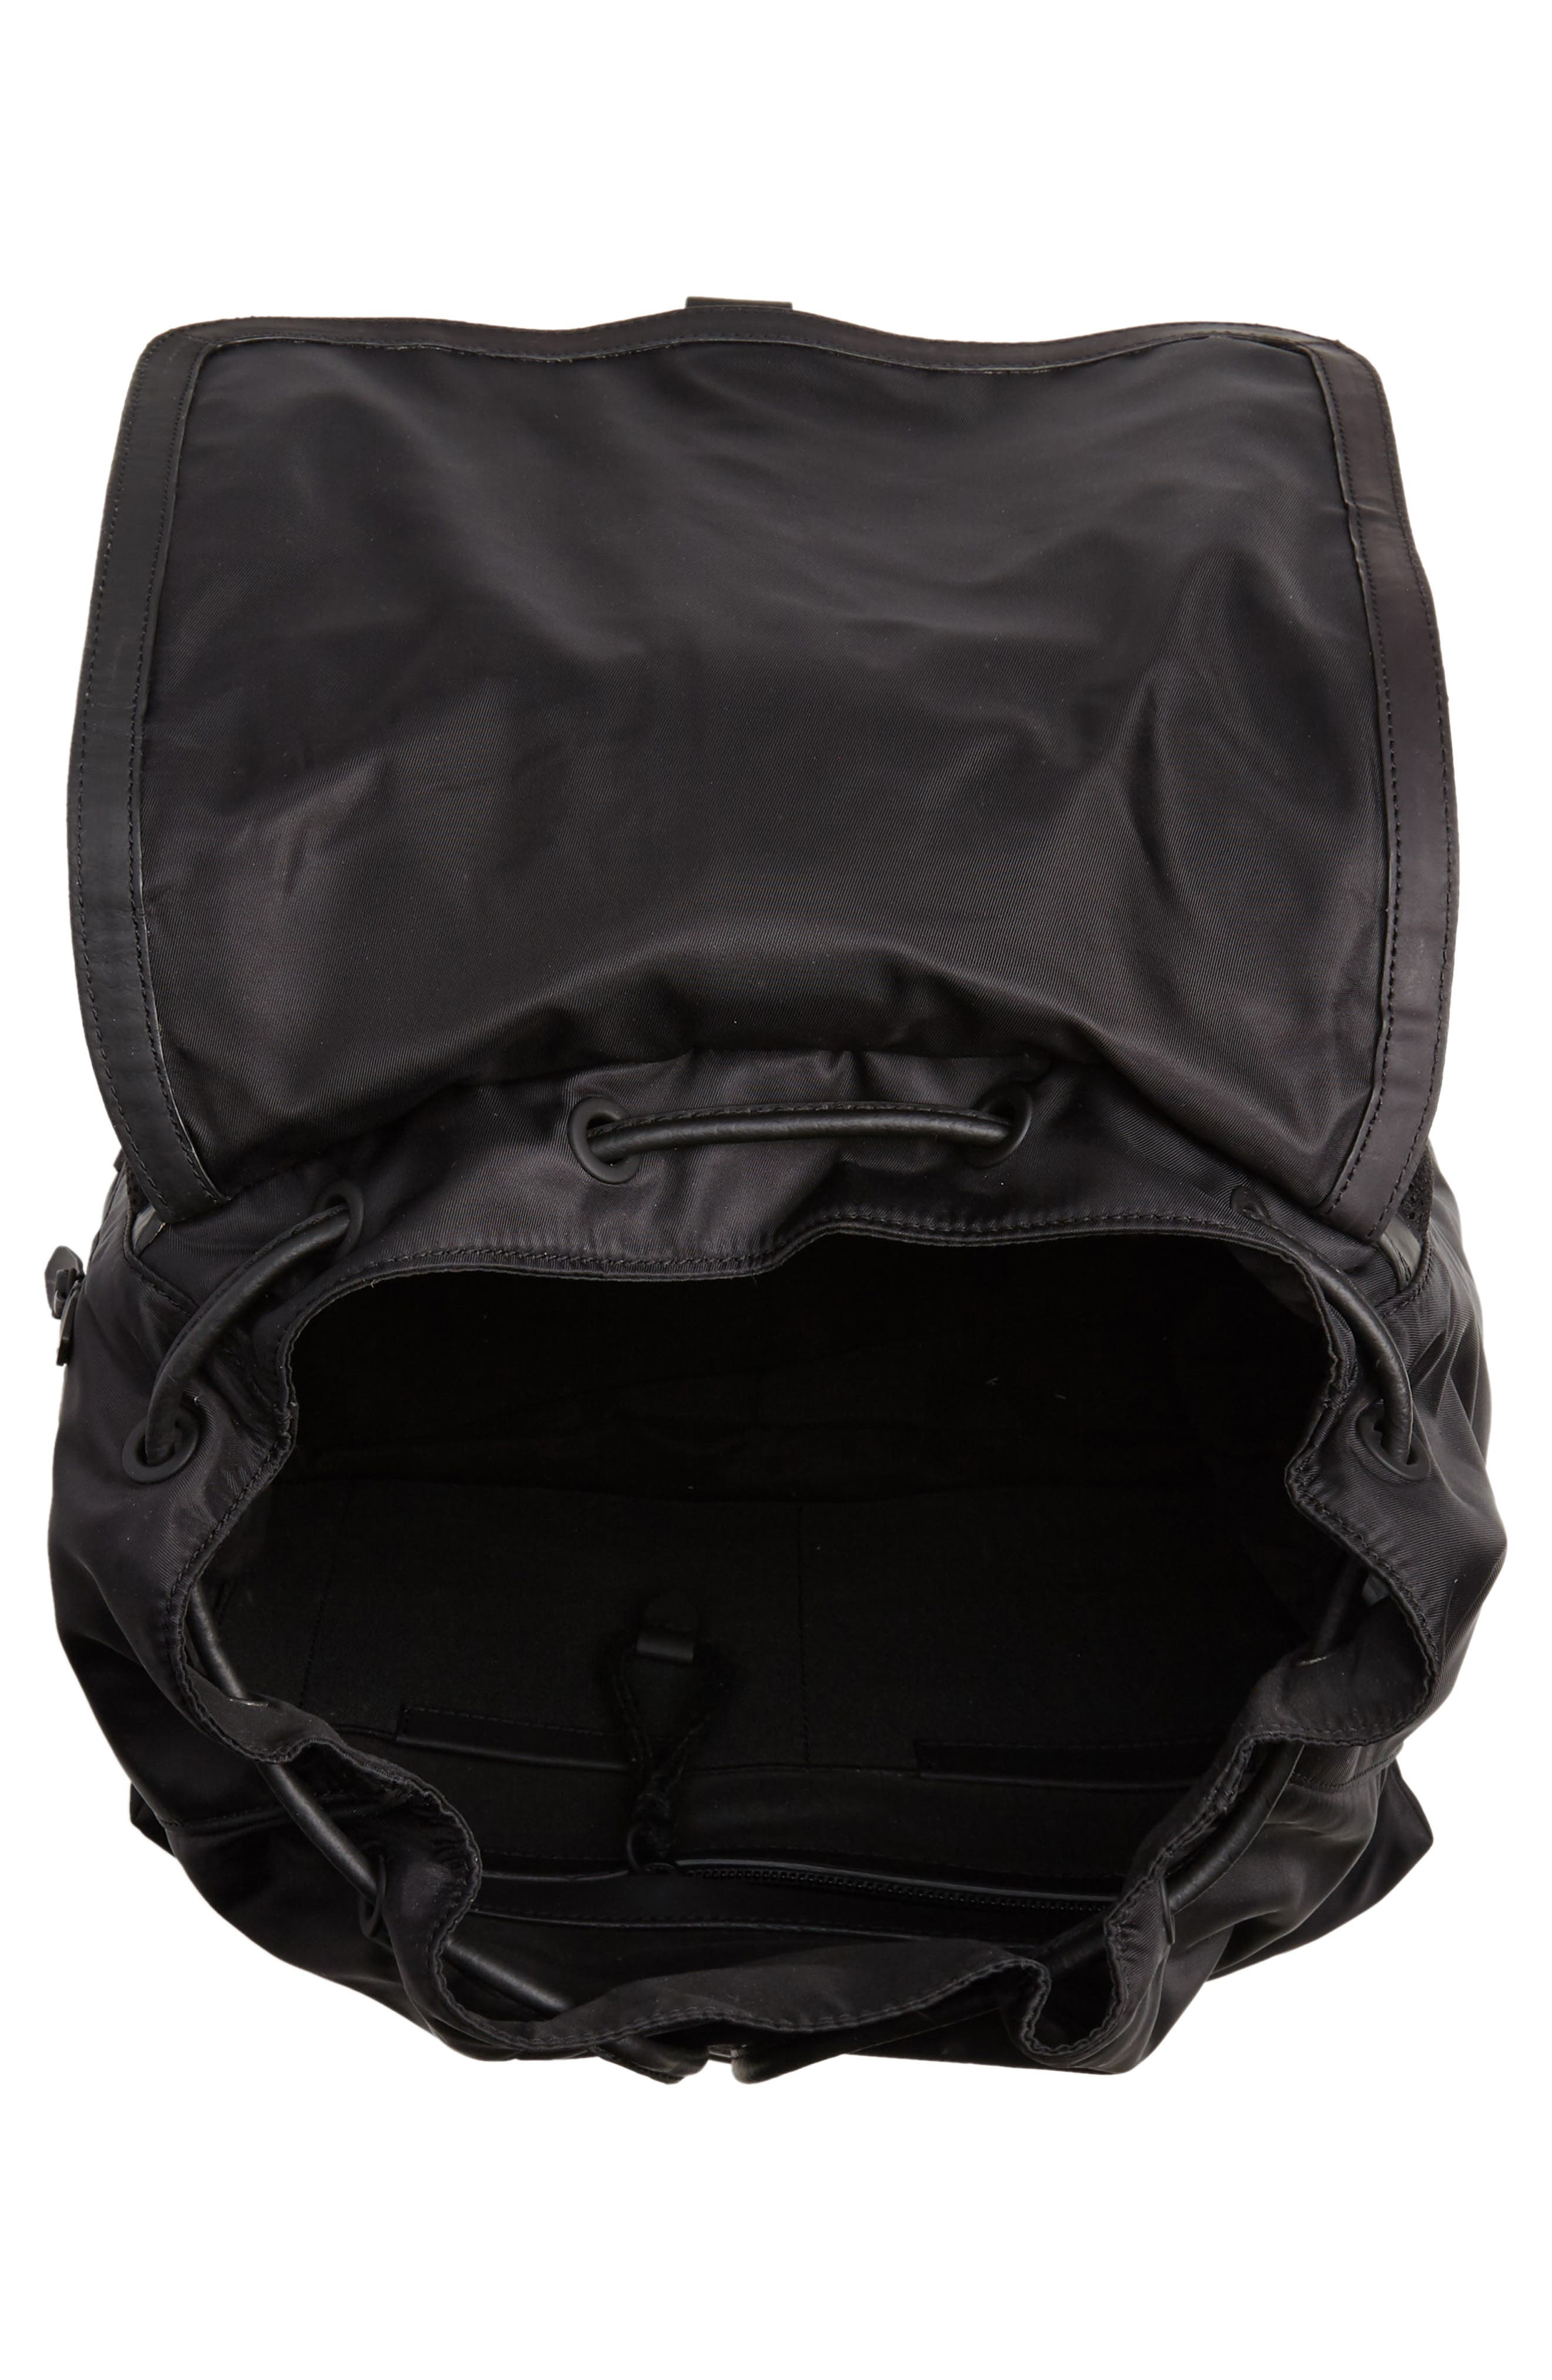 COLE HAAN, ZeroGrand Backpack, Alternate thumbnail 4, color, BLACK